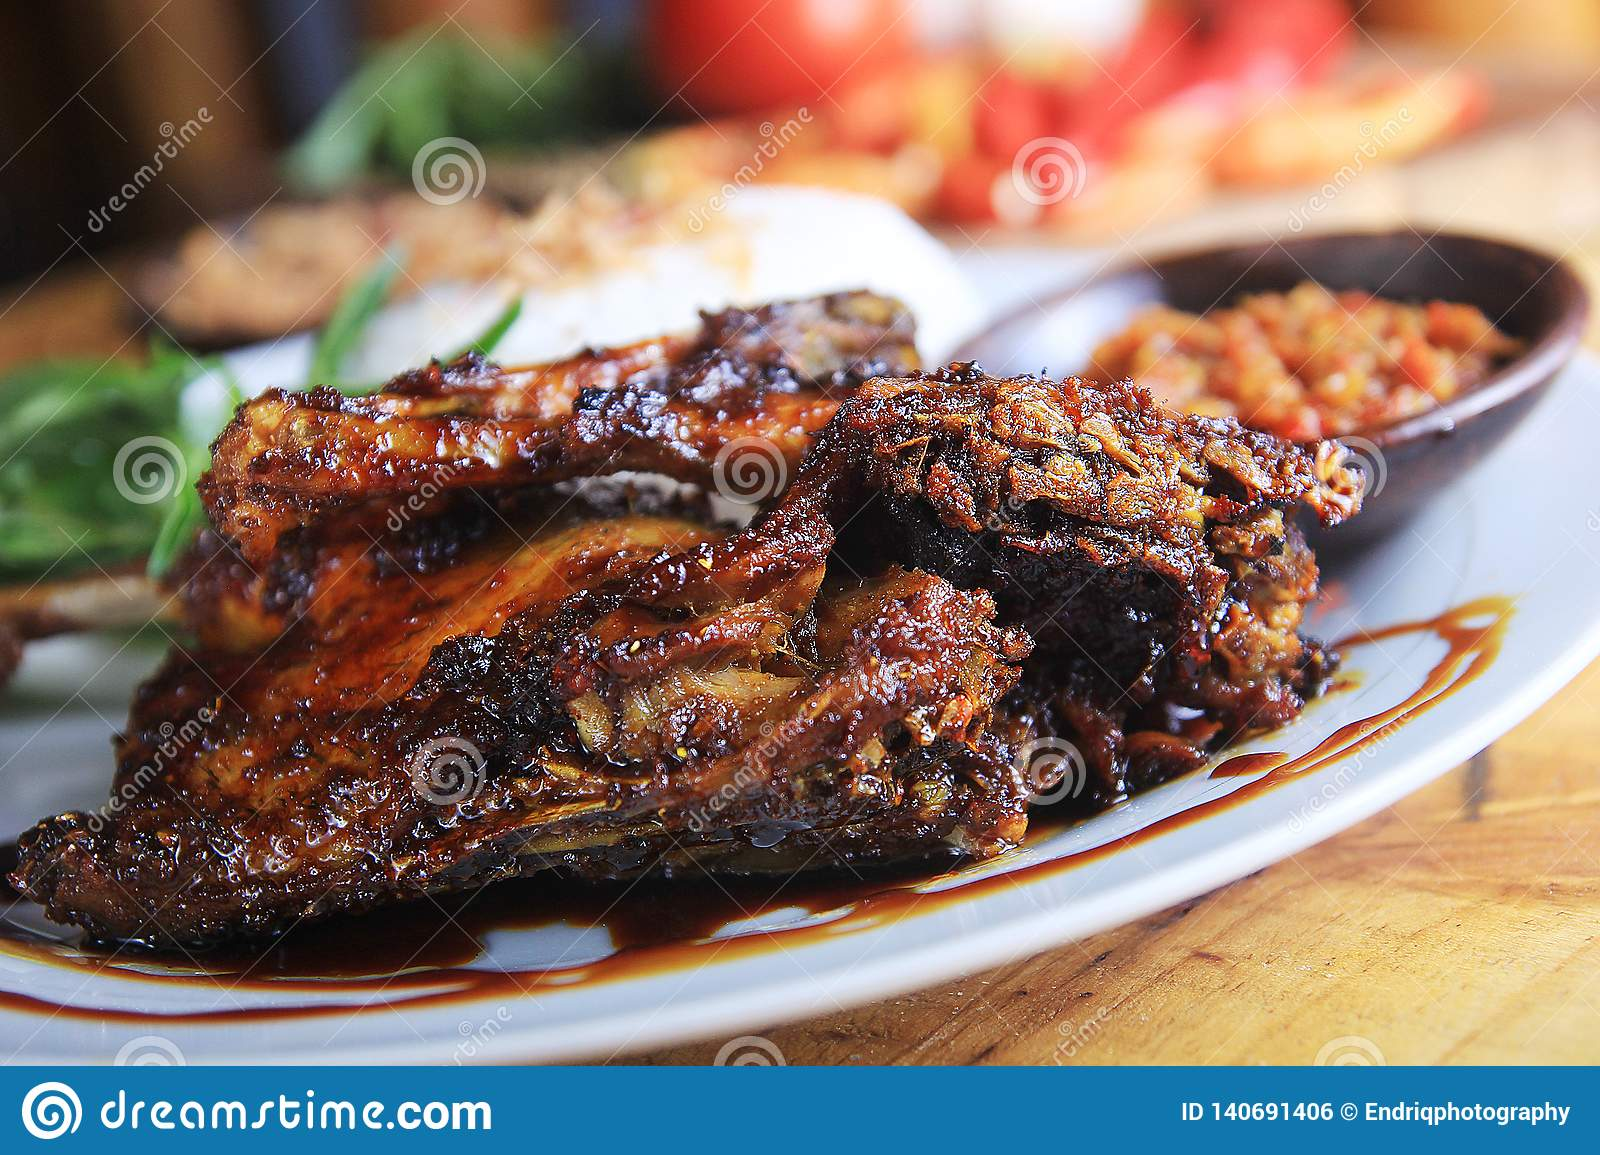 Indonesian Culinary Fried Duck Rice Stock Photo - Image of